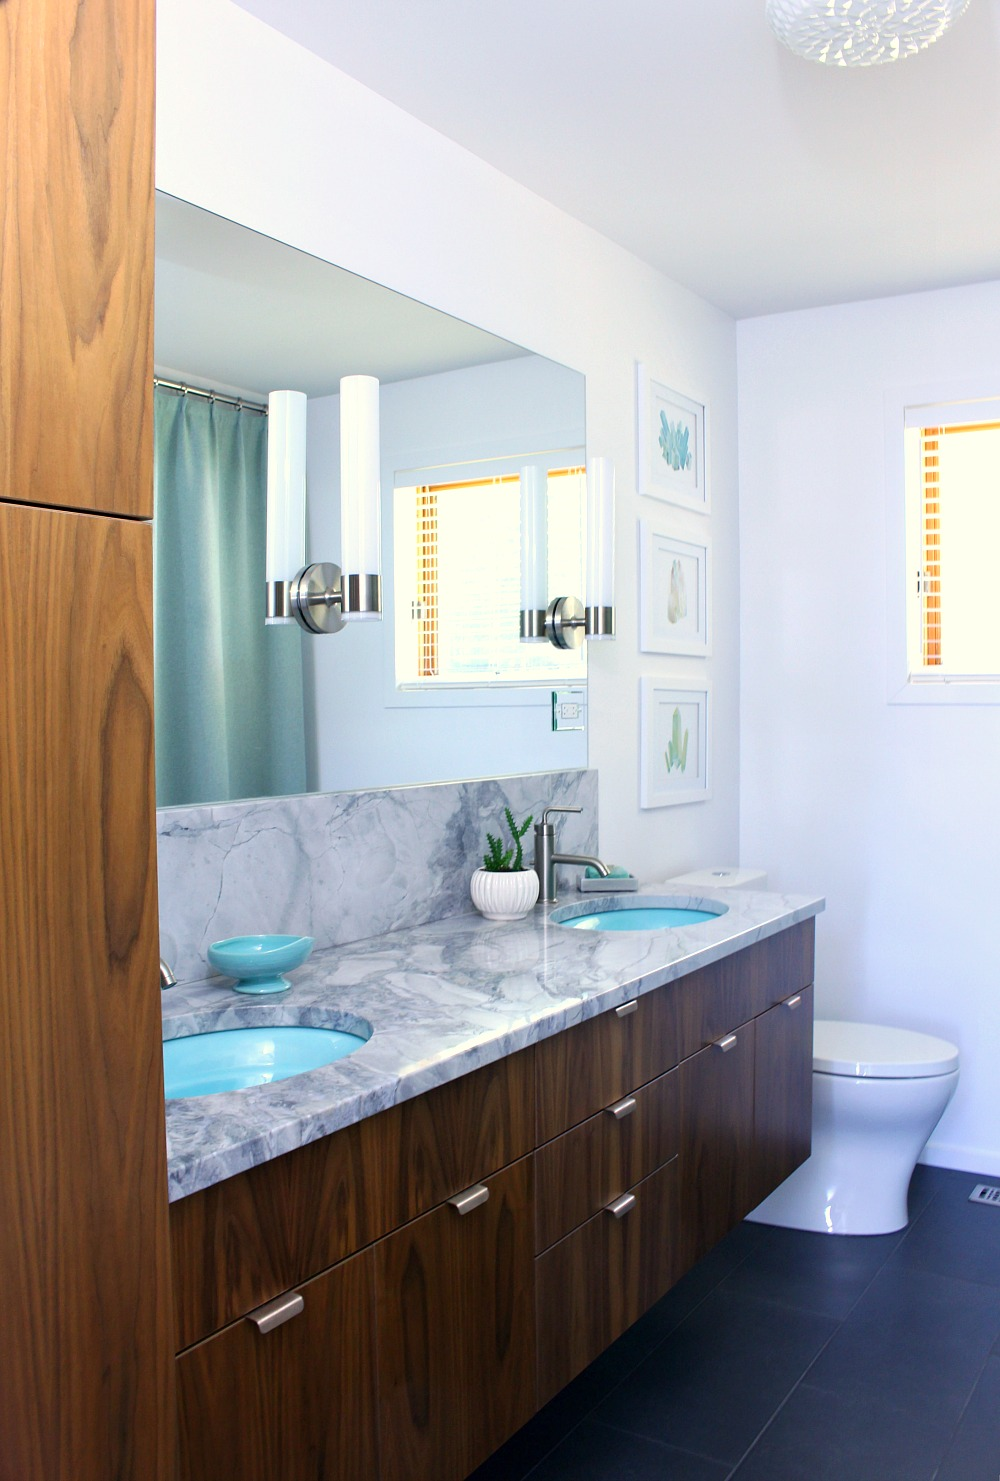 A Mid-Century Modern Inspired Bathroom Renovation - Before ...